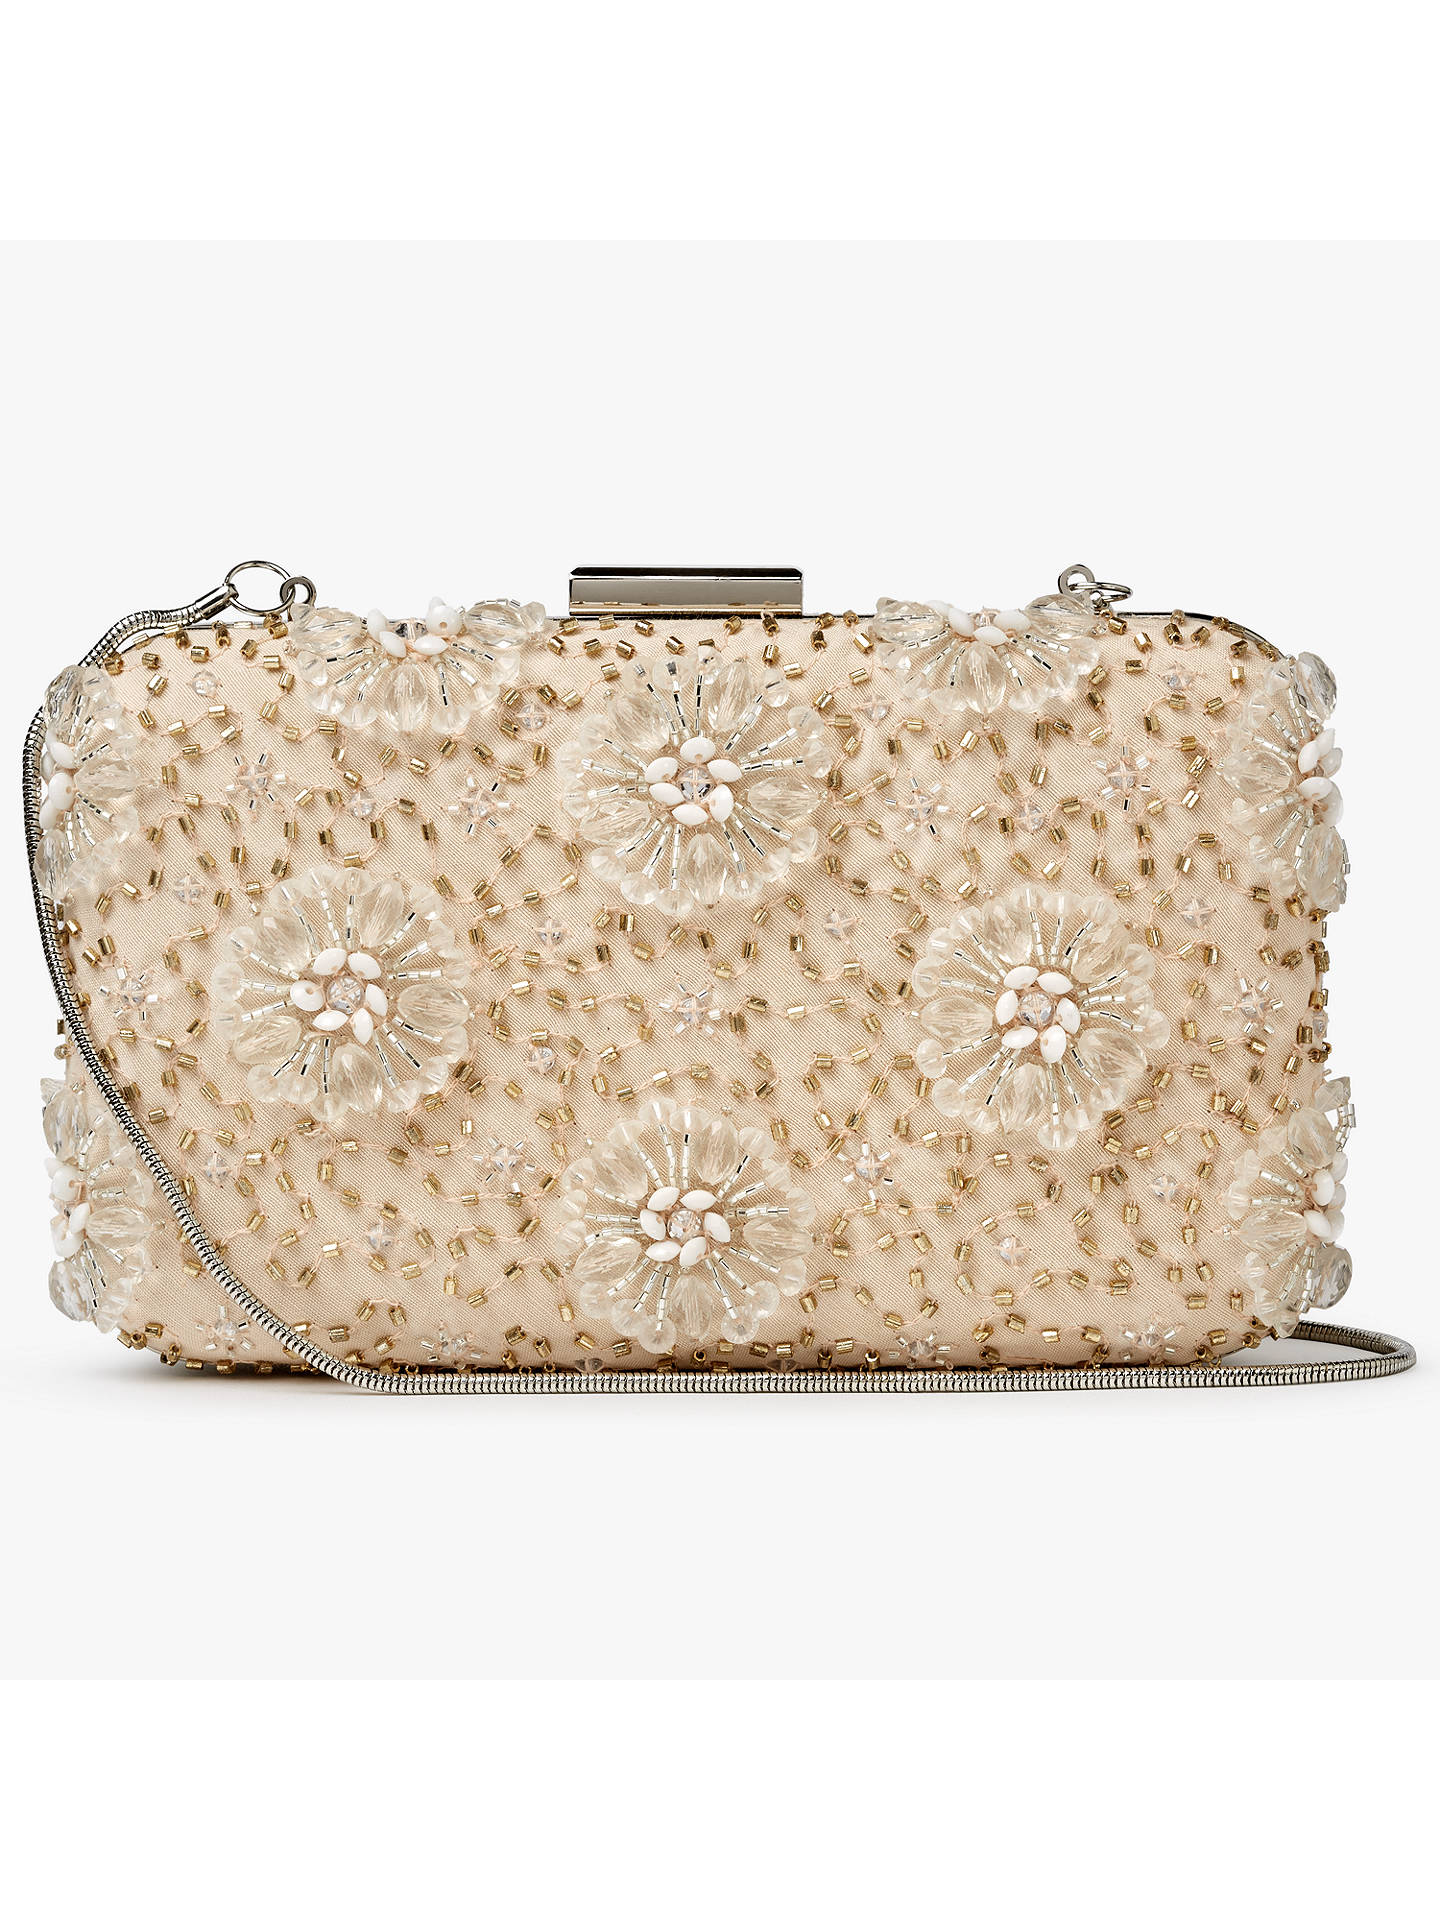 BuyJohn Lewis & Partners Stella Floral Box Clutch Bag, Nude Online at johnlewis.com